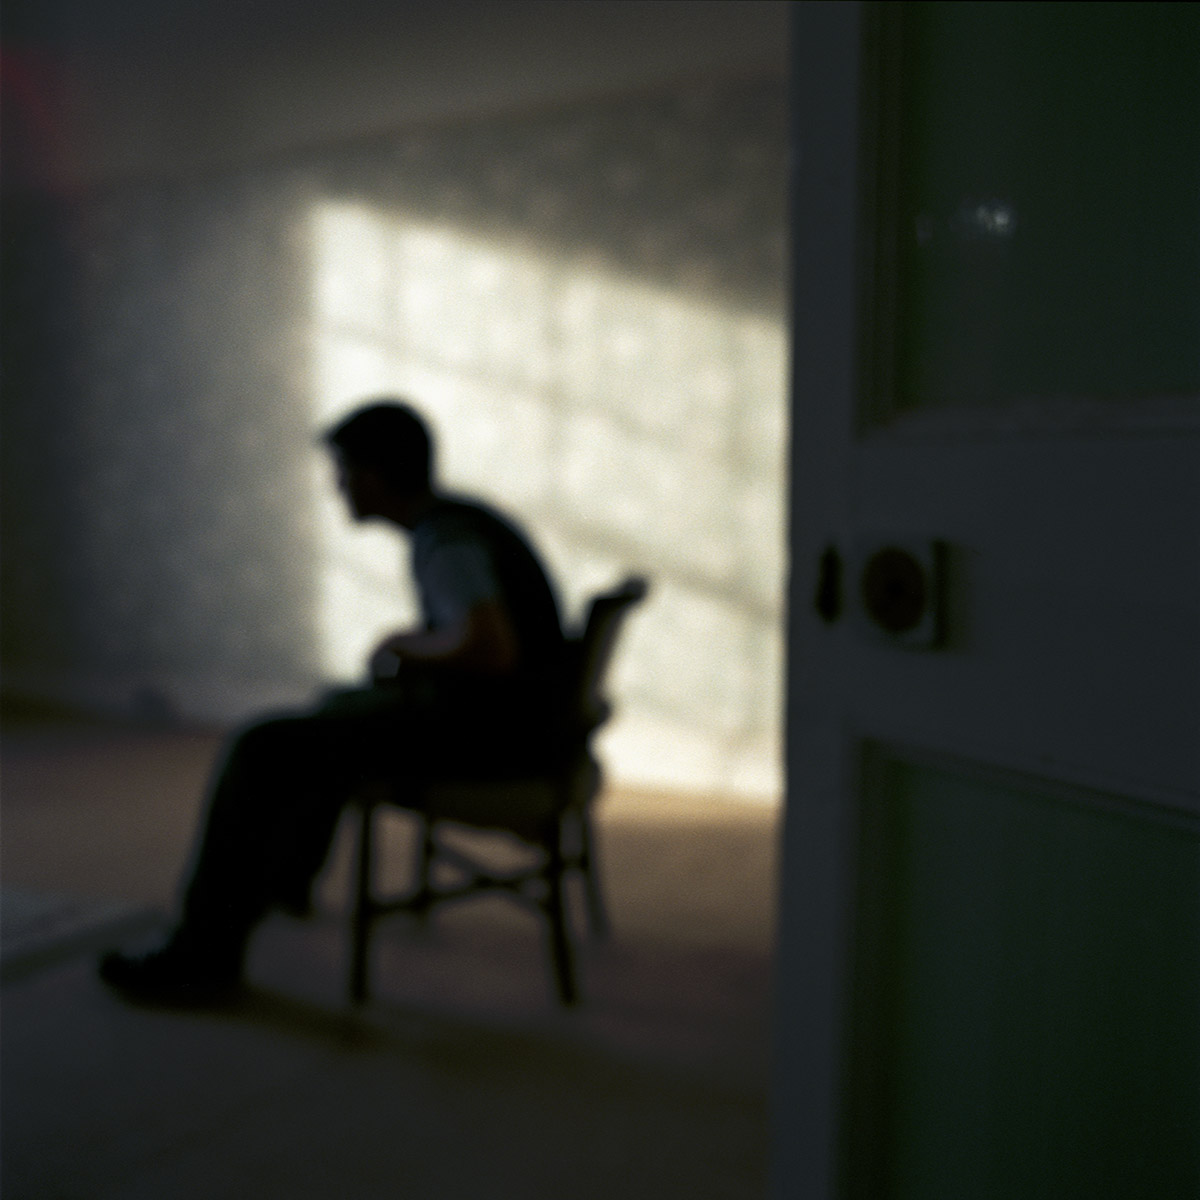 Julian-Ward-Sitting-Silhouette.jpg